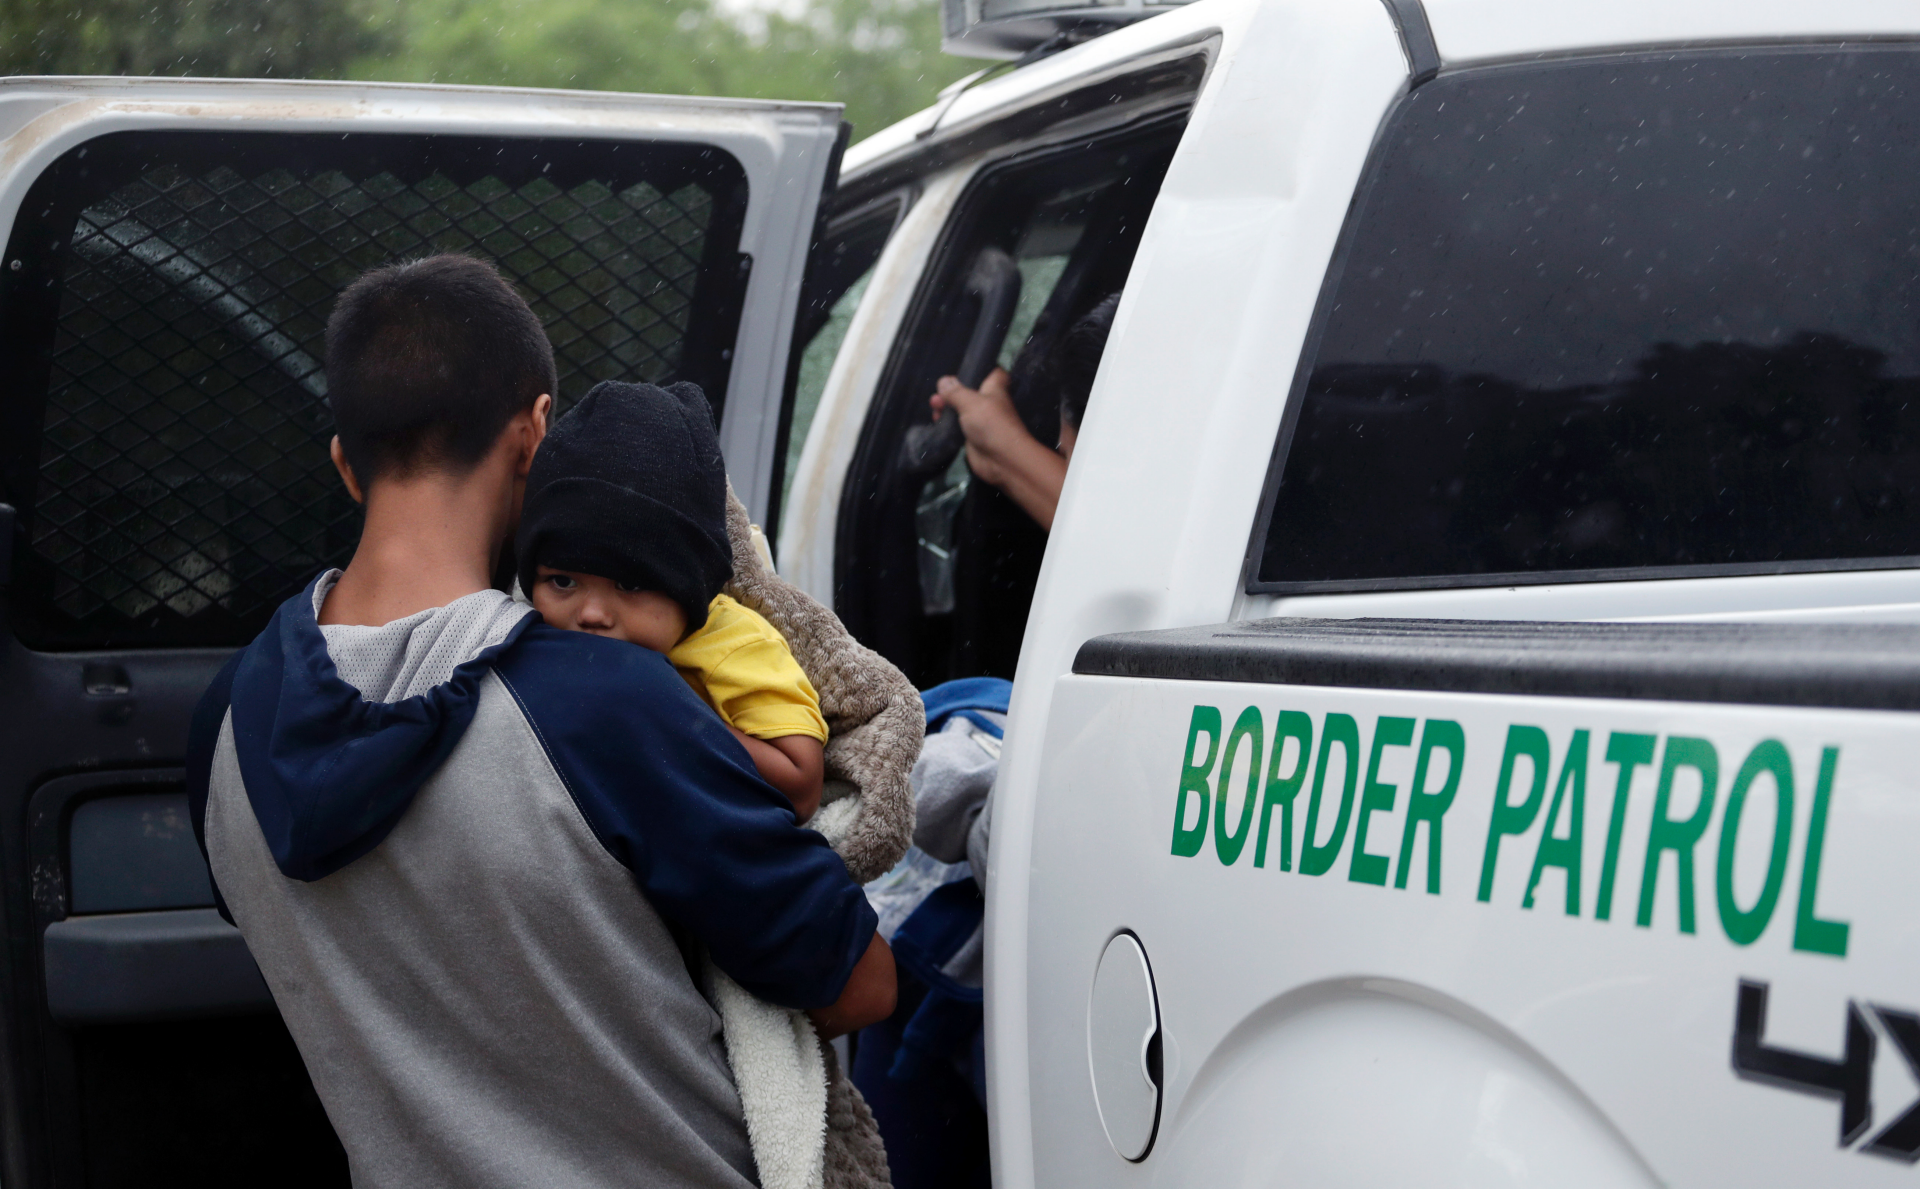 New York Times op-ed writer calls for public shaming of US Border Patrol agents